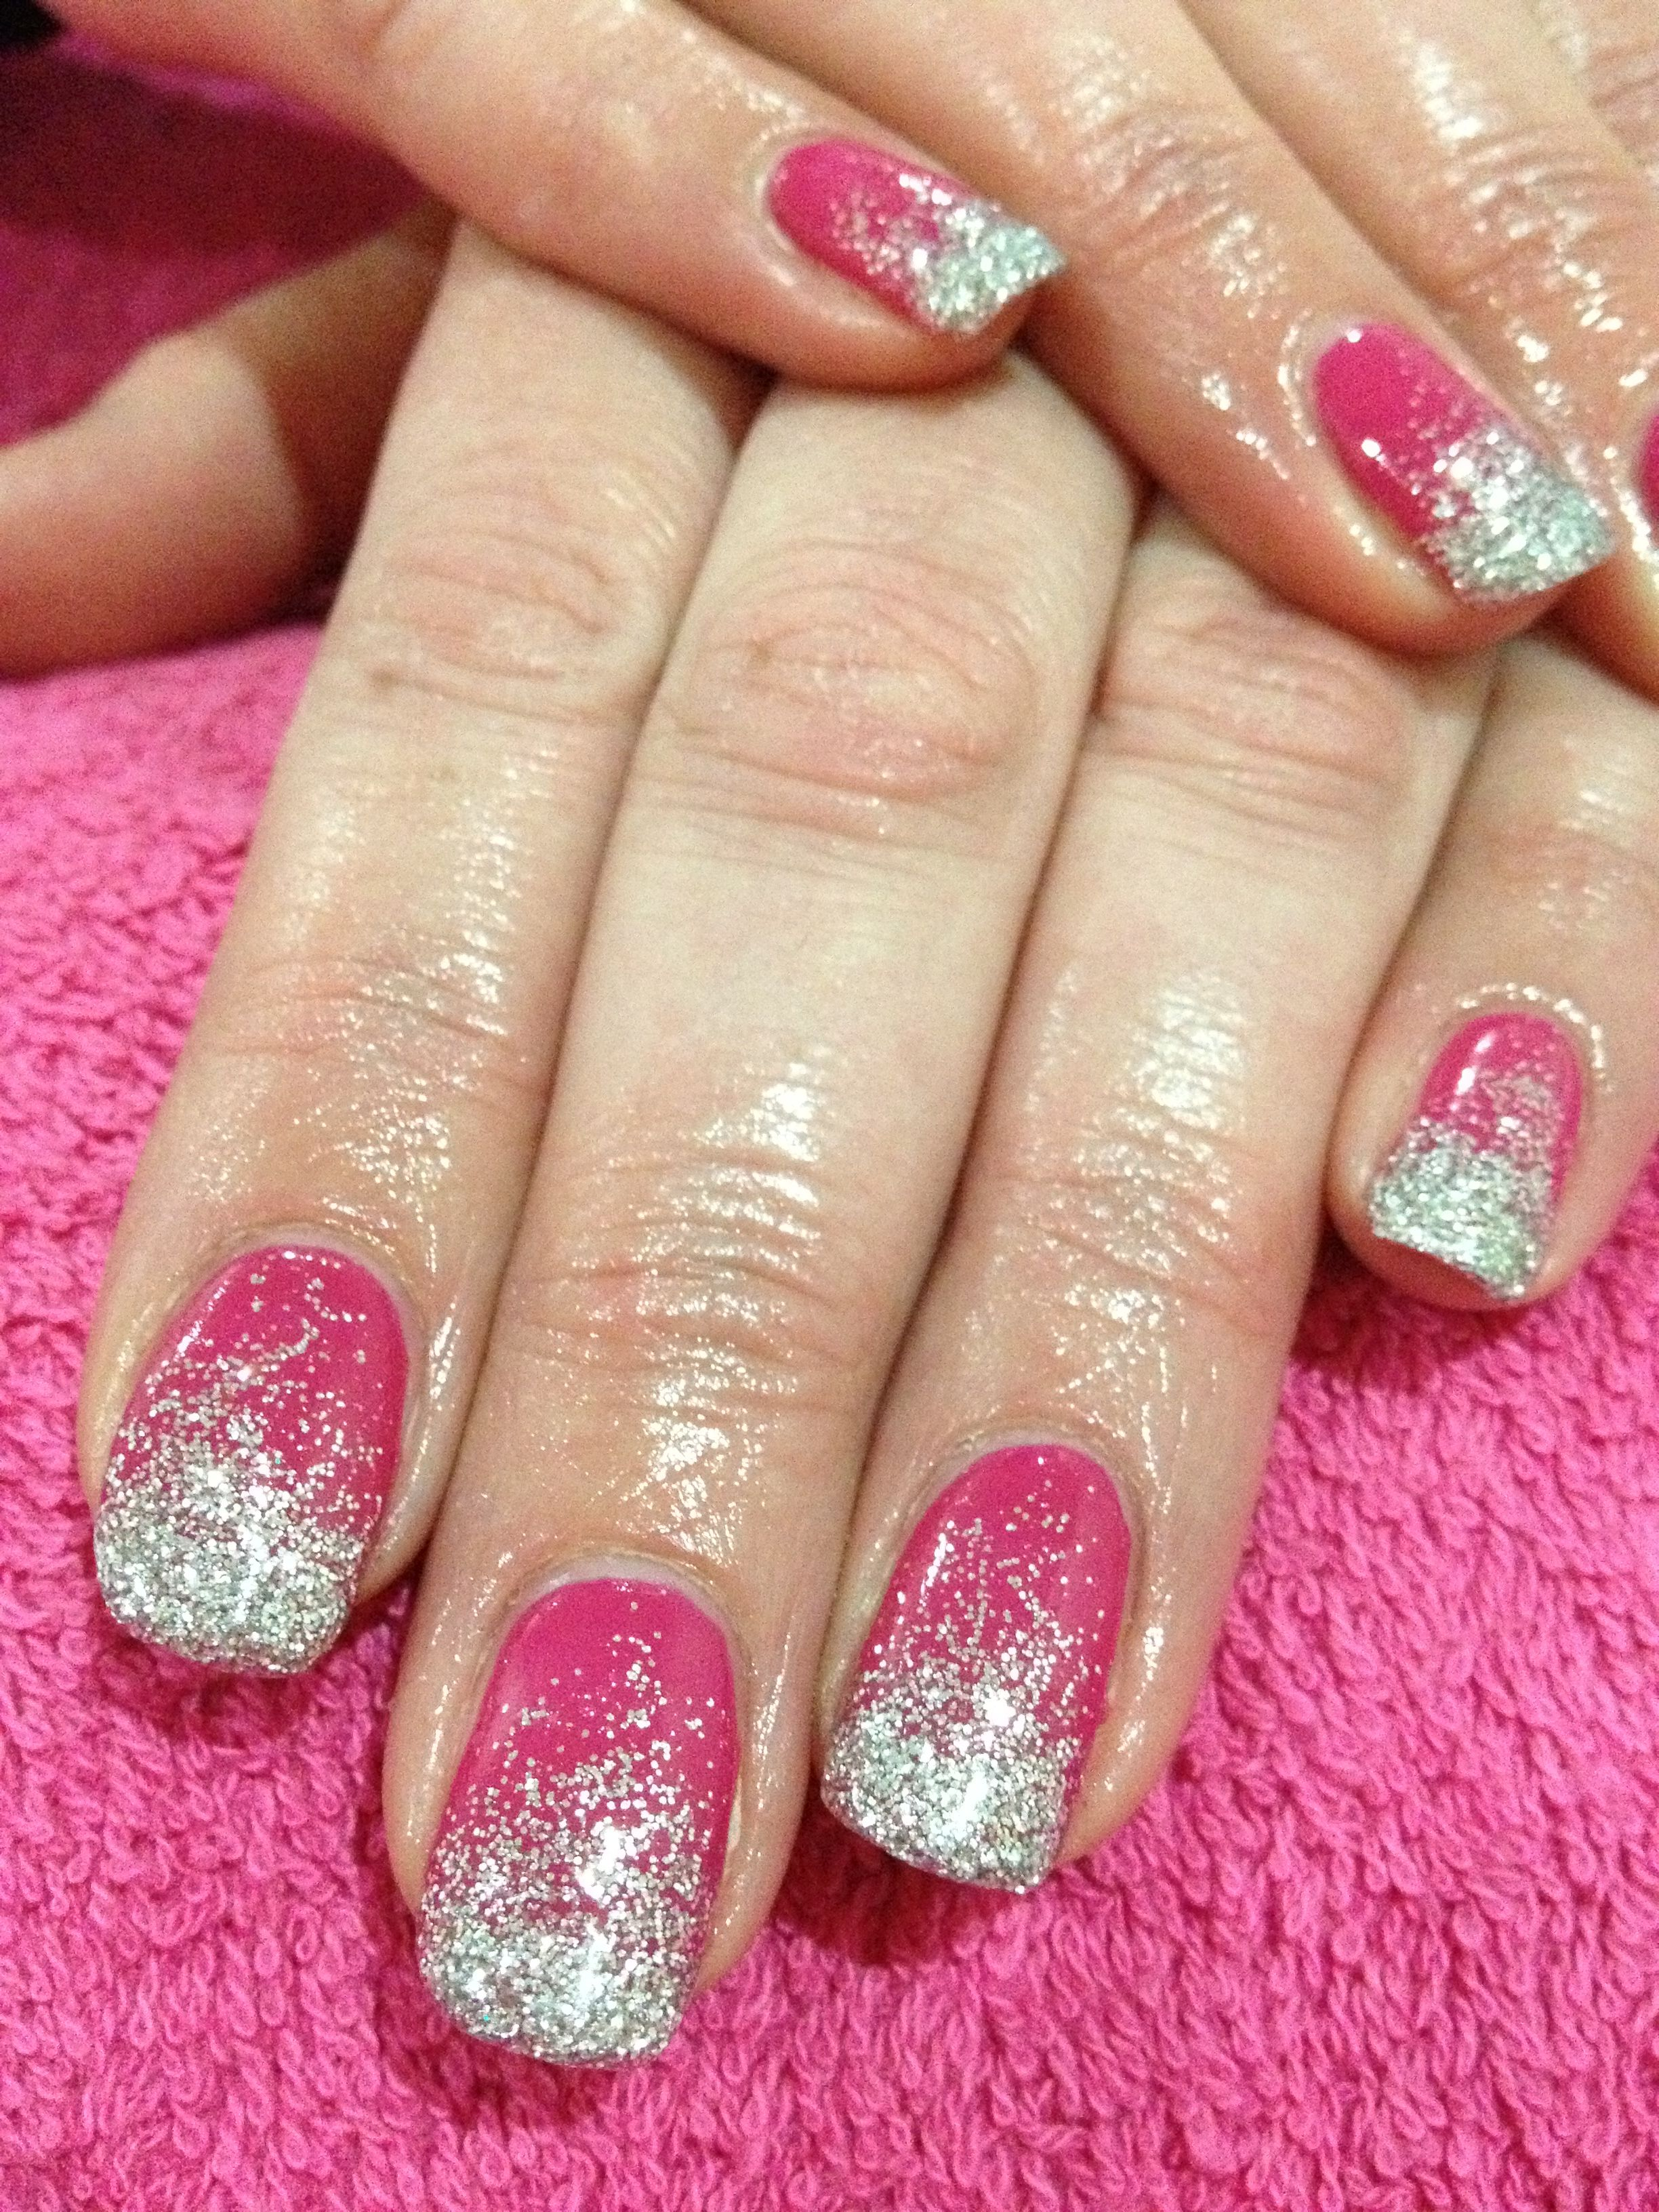 Pink And Silver Glitter Gel Nails Glitter Gel Nails Glitter Gel Gel Nails